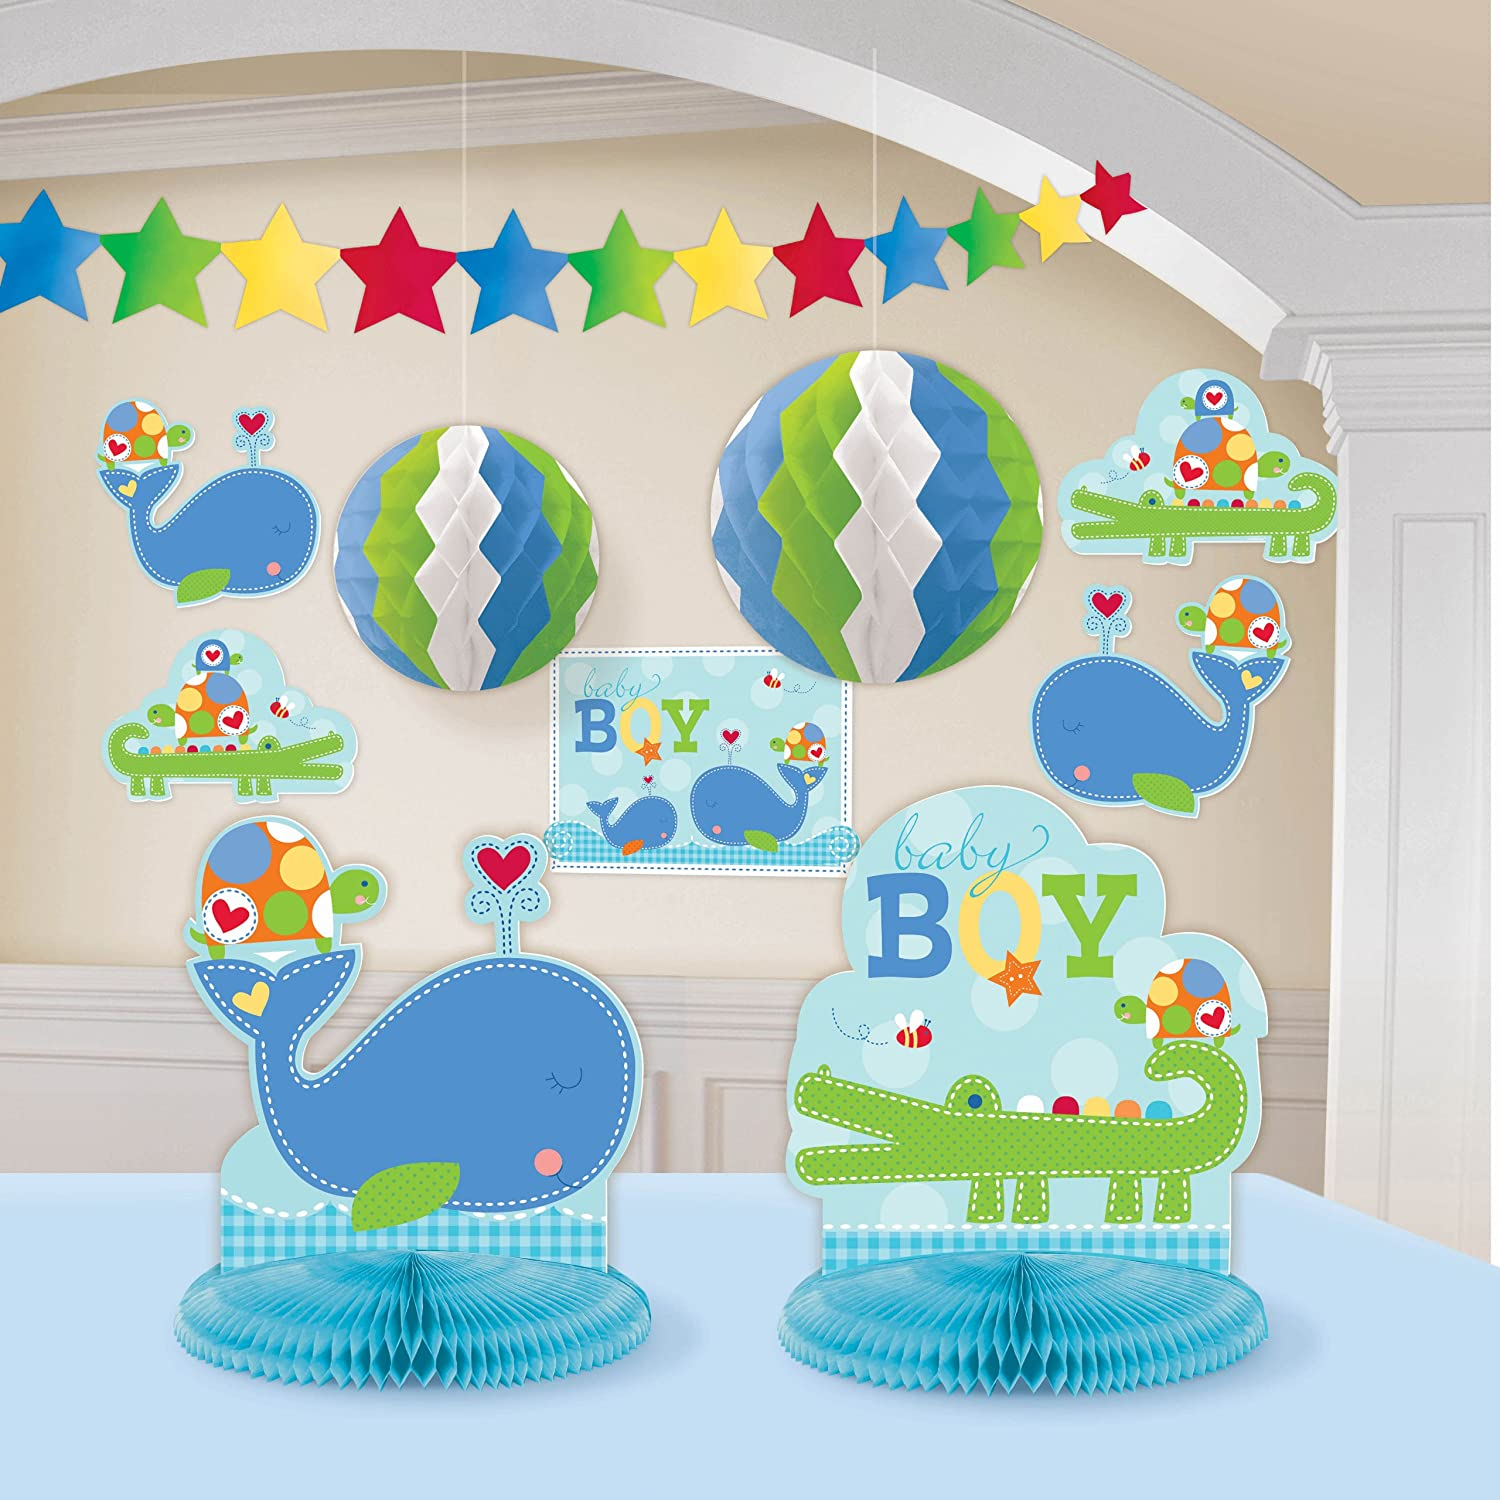 Ahoy Baby Room Decorating Kit Blue Boy Shower Birthday Supplies